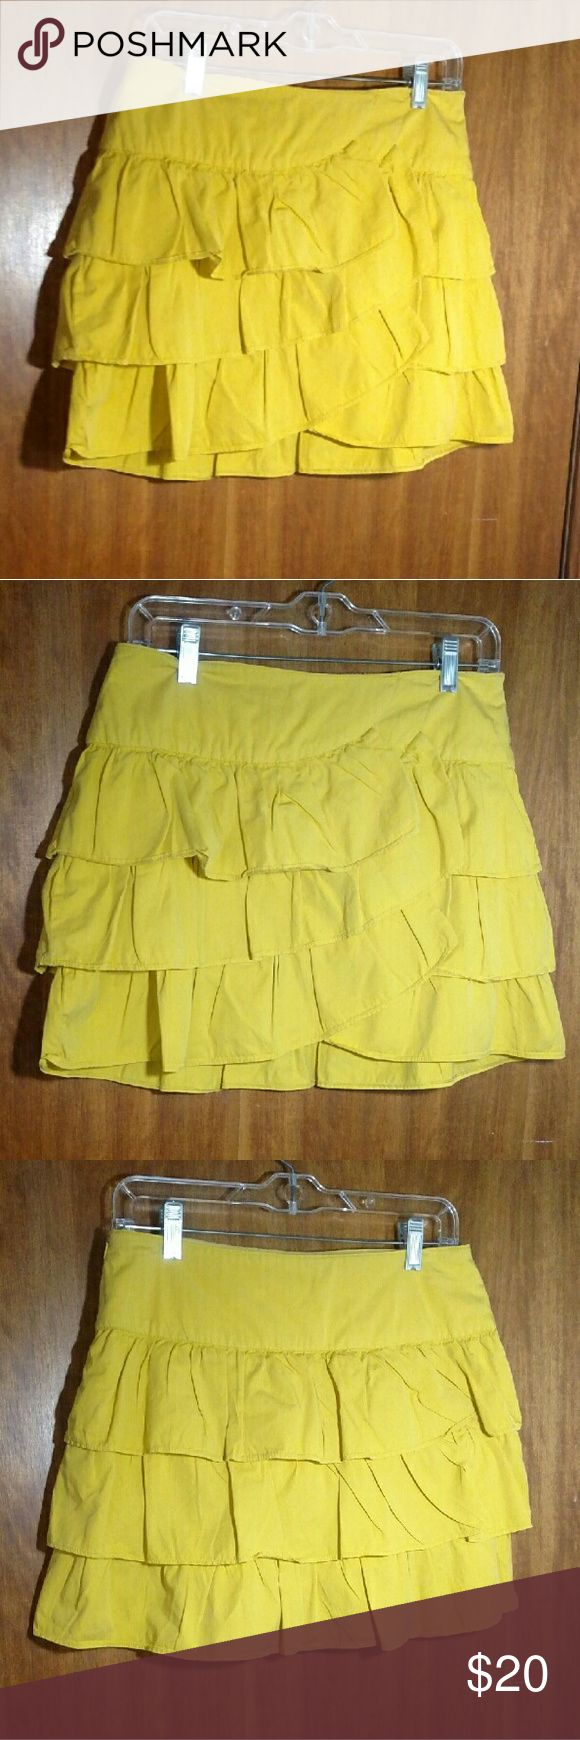 Zara Mustard Yellow Cotton Ruffle Skirt Cotton ruffle skirt has tiered layers which are set a little bit diagonally in the front to create an overlap area to one side. Lined. Side zip with hook and eye closure to. Size medium by Zara Basics. In nice pre-owned condition, no stains, tears, or other visible flaws. Zara Skirts